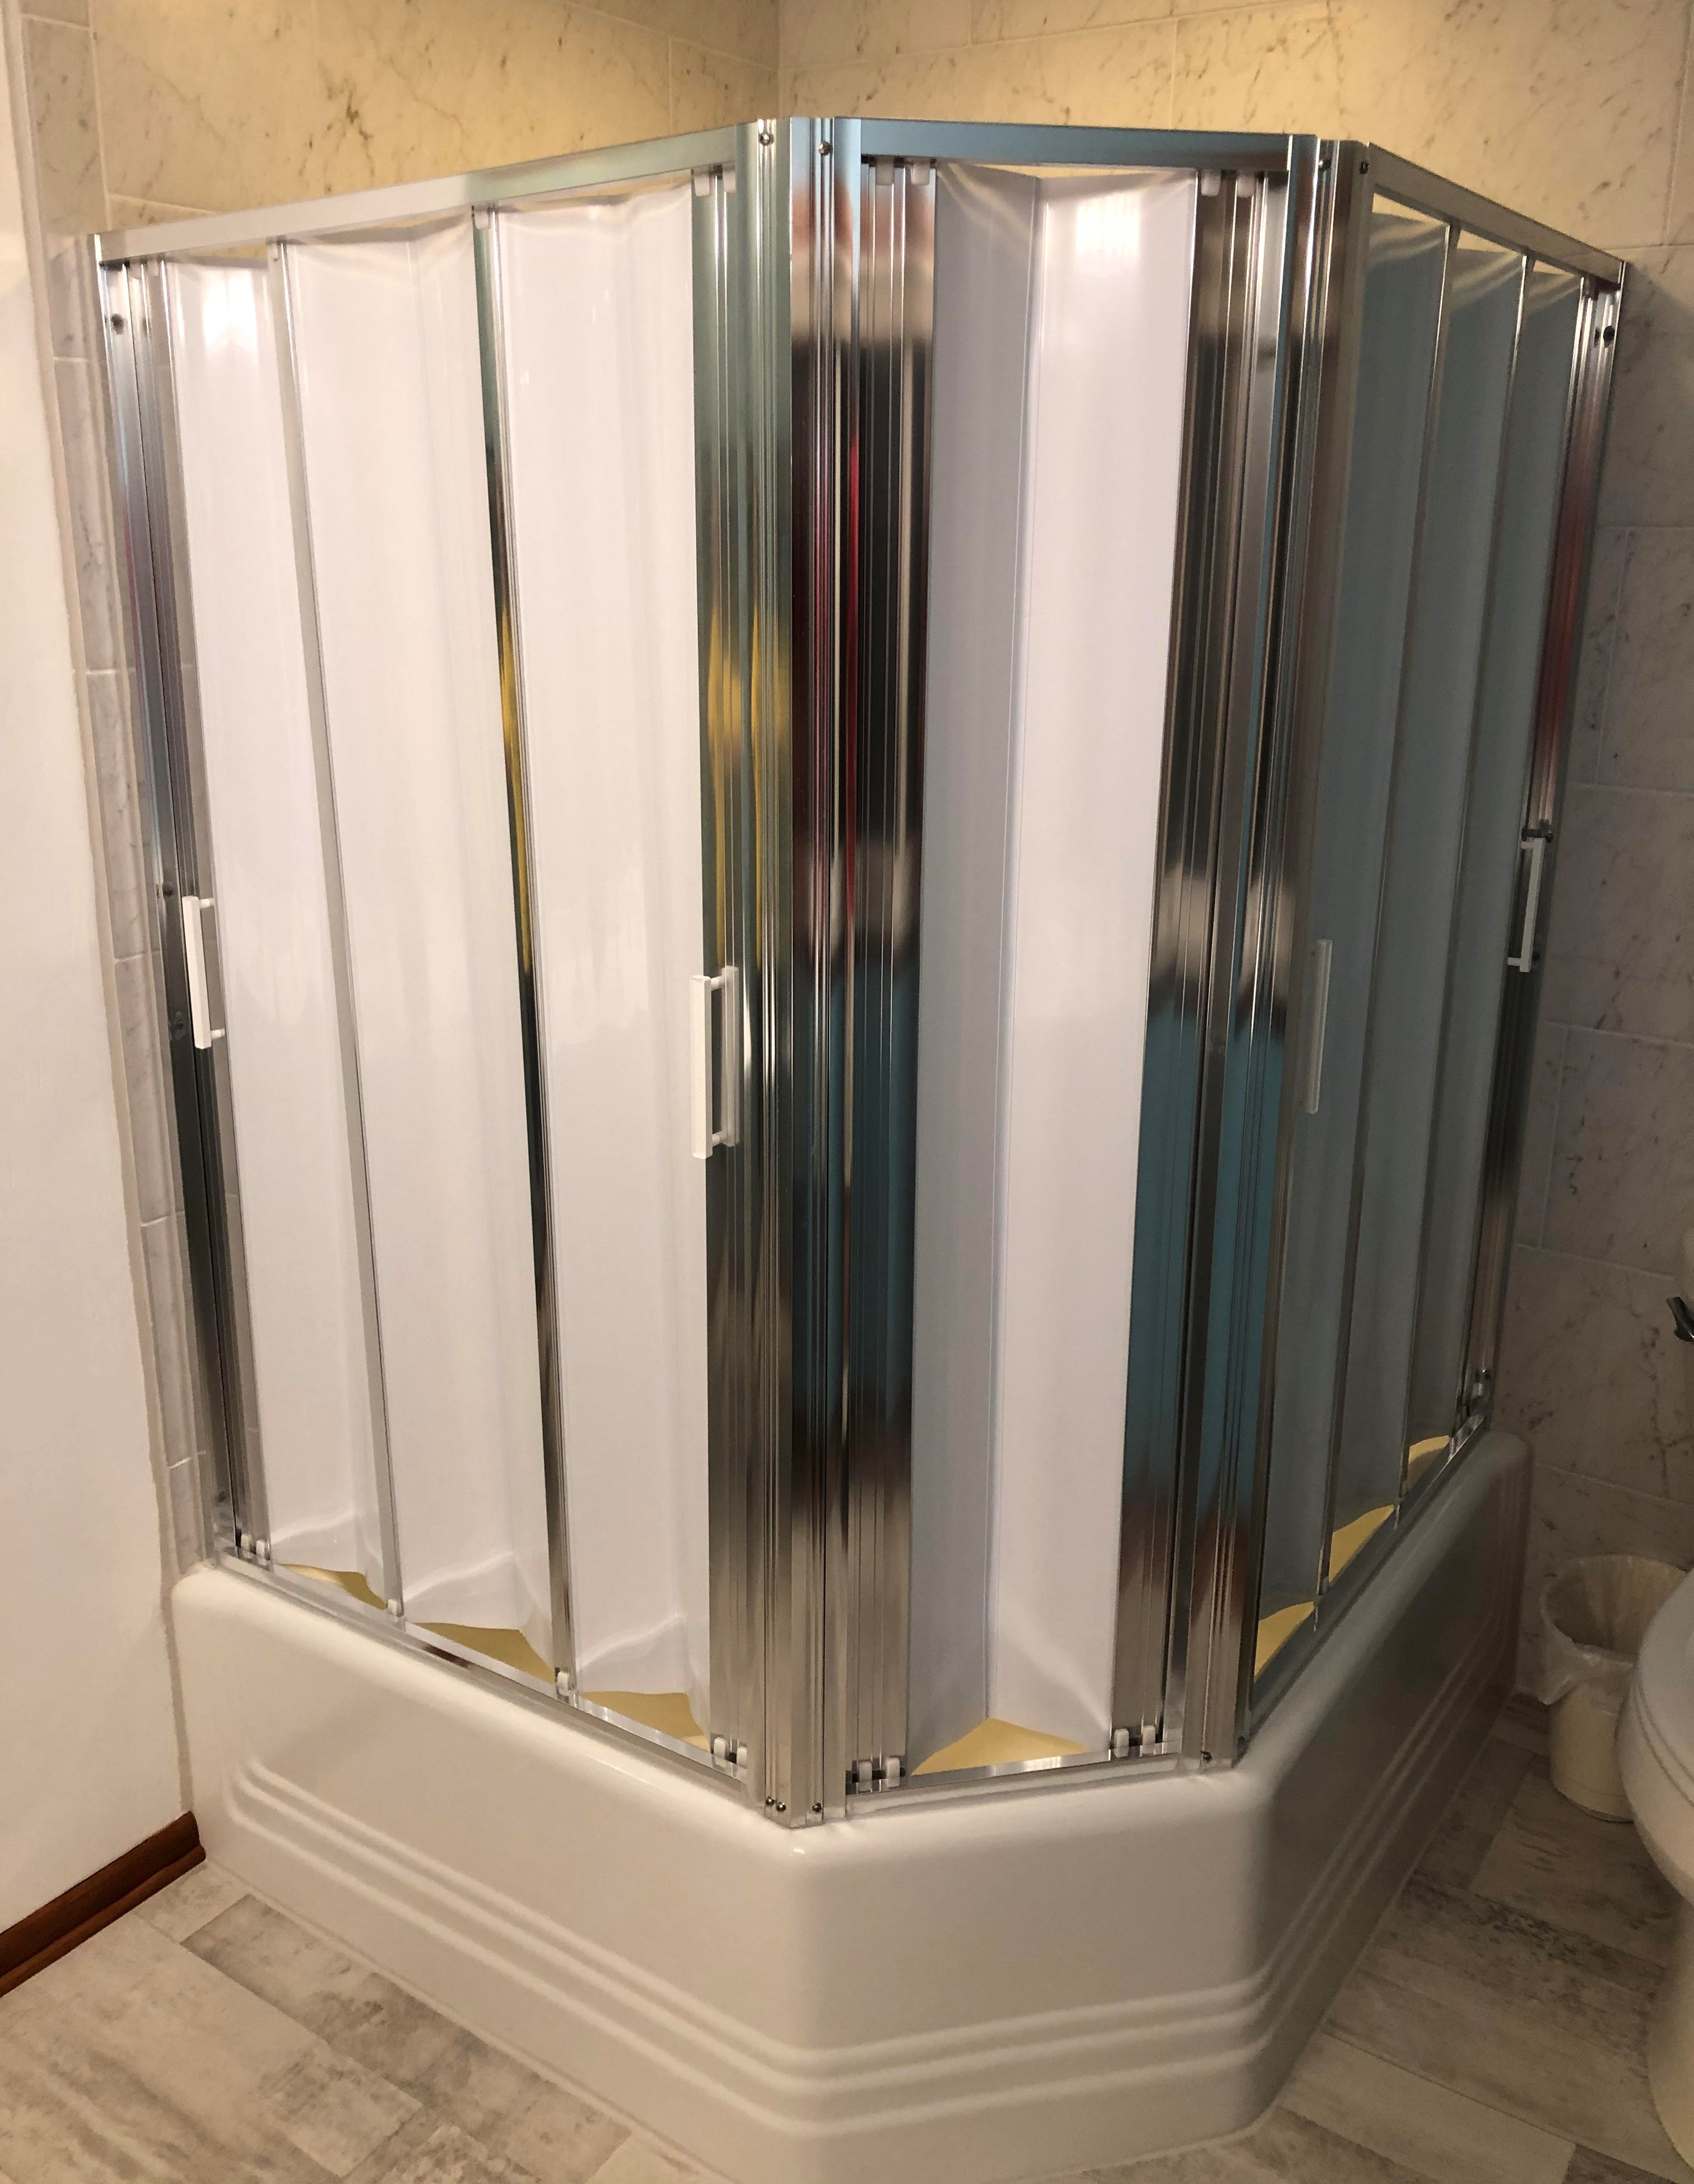 3 doors used to make a corner shower